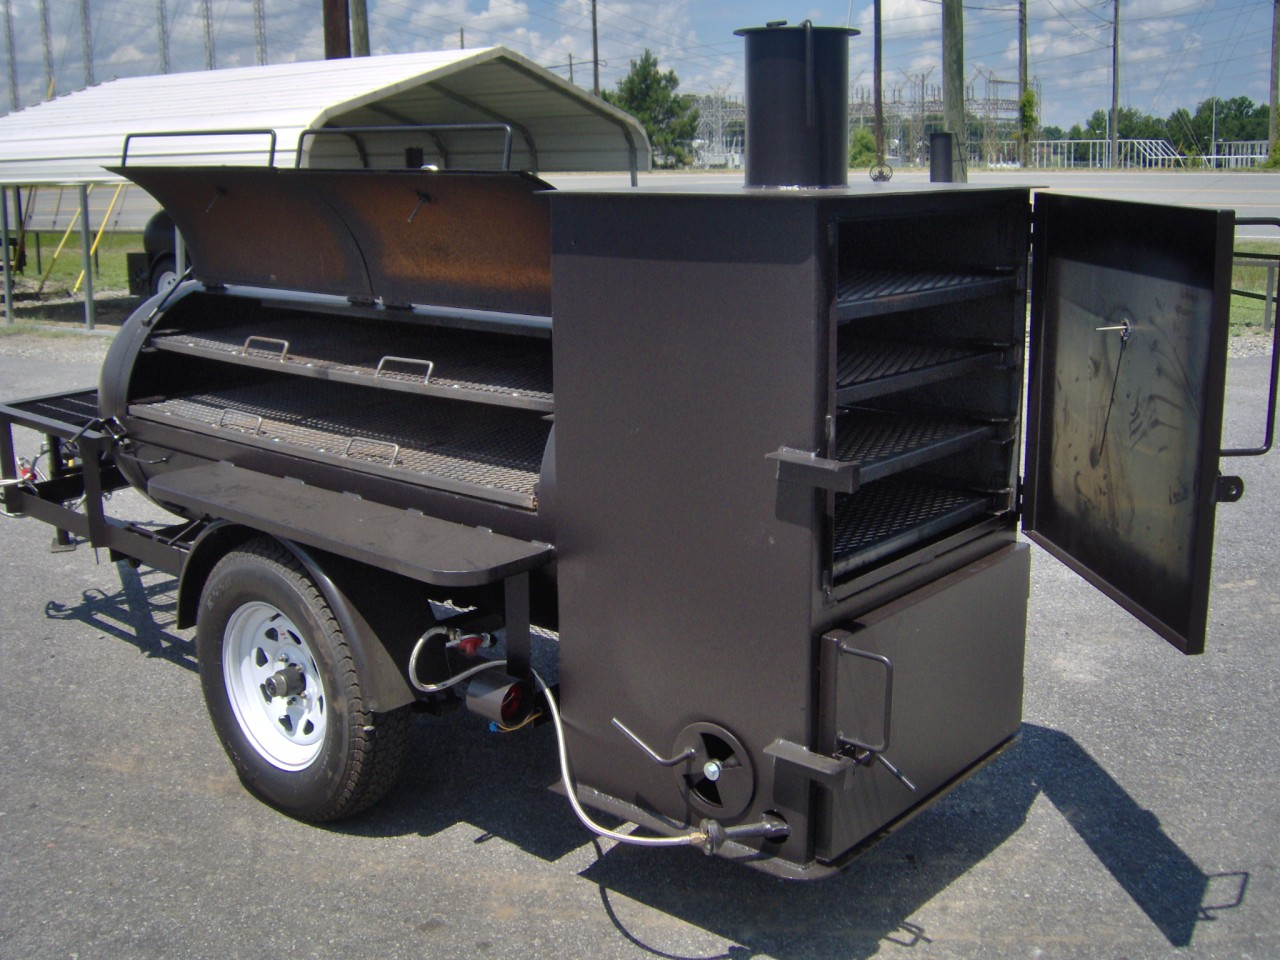 rib box bbq smoker pit grill on trailer w gas starter ebay. Black Bedroom Furniture Sets. Home Design Ideas